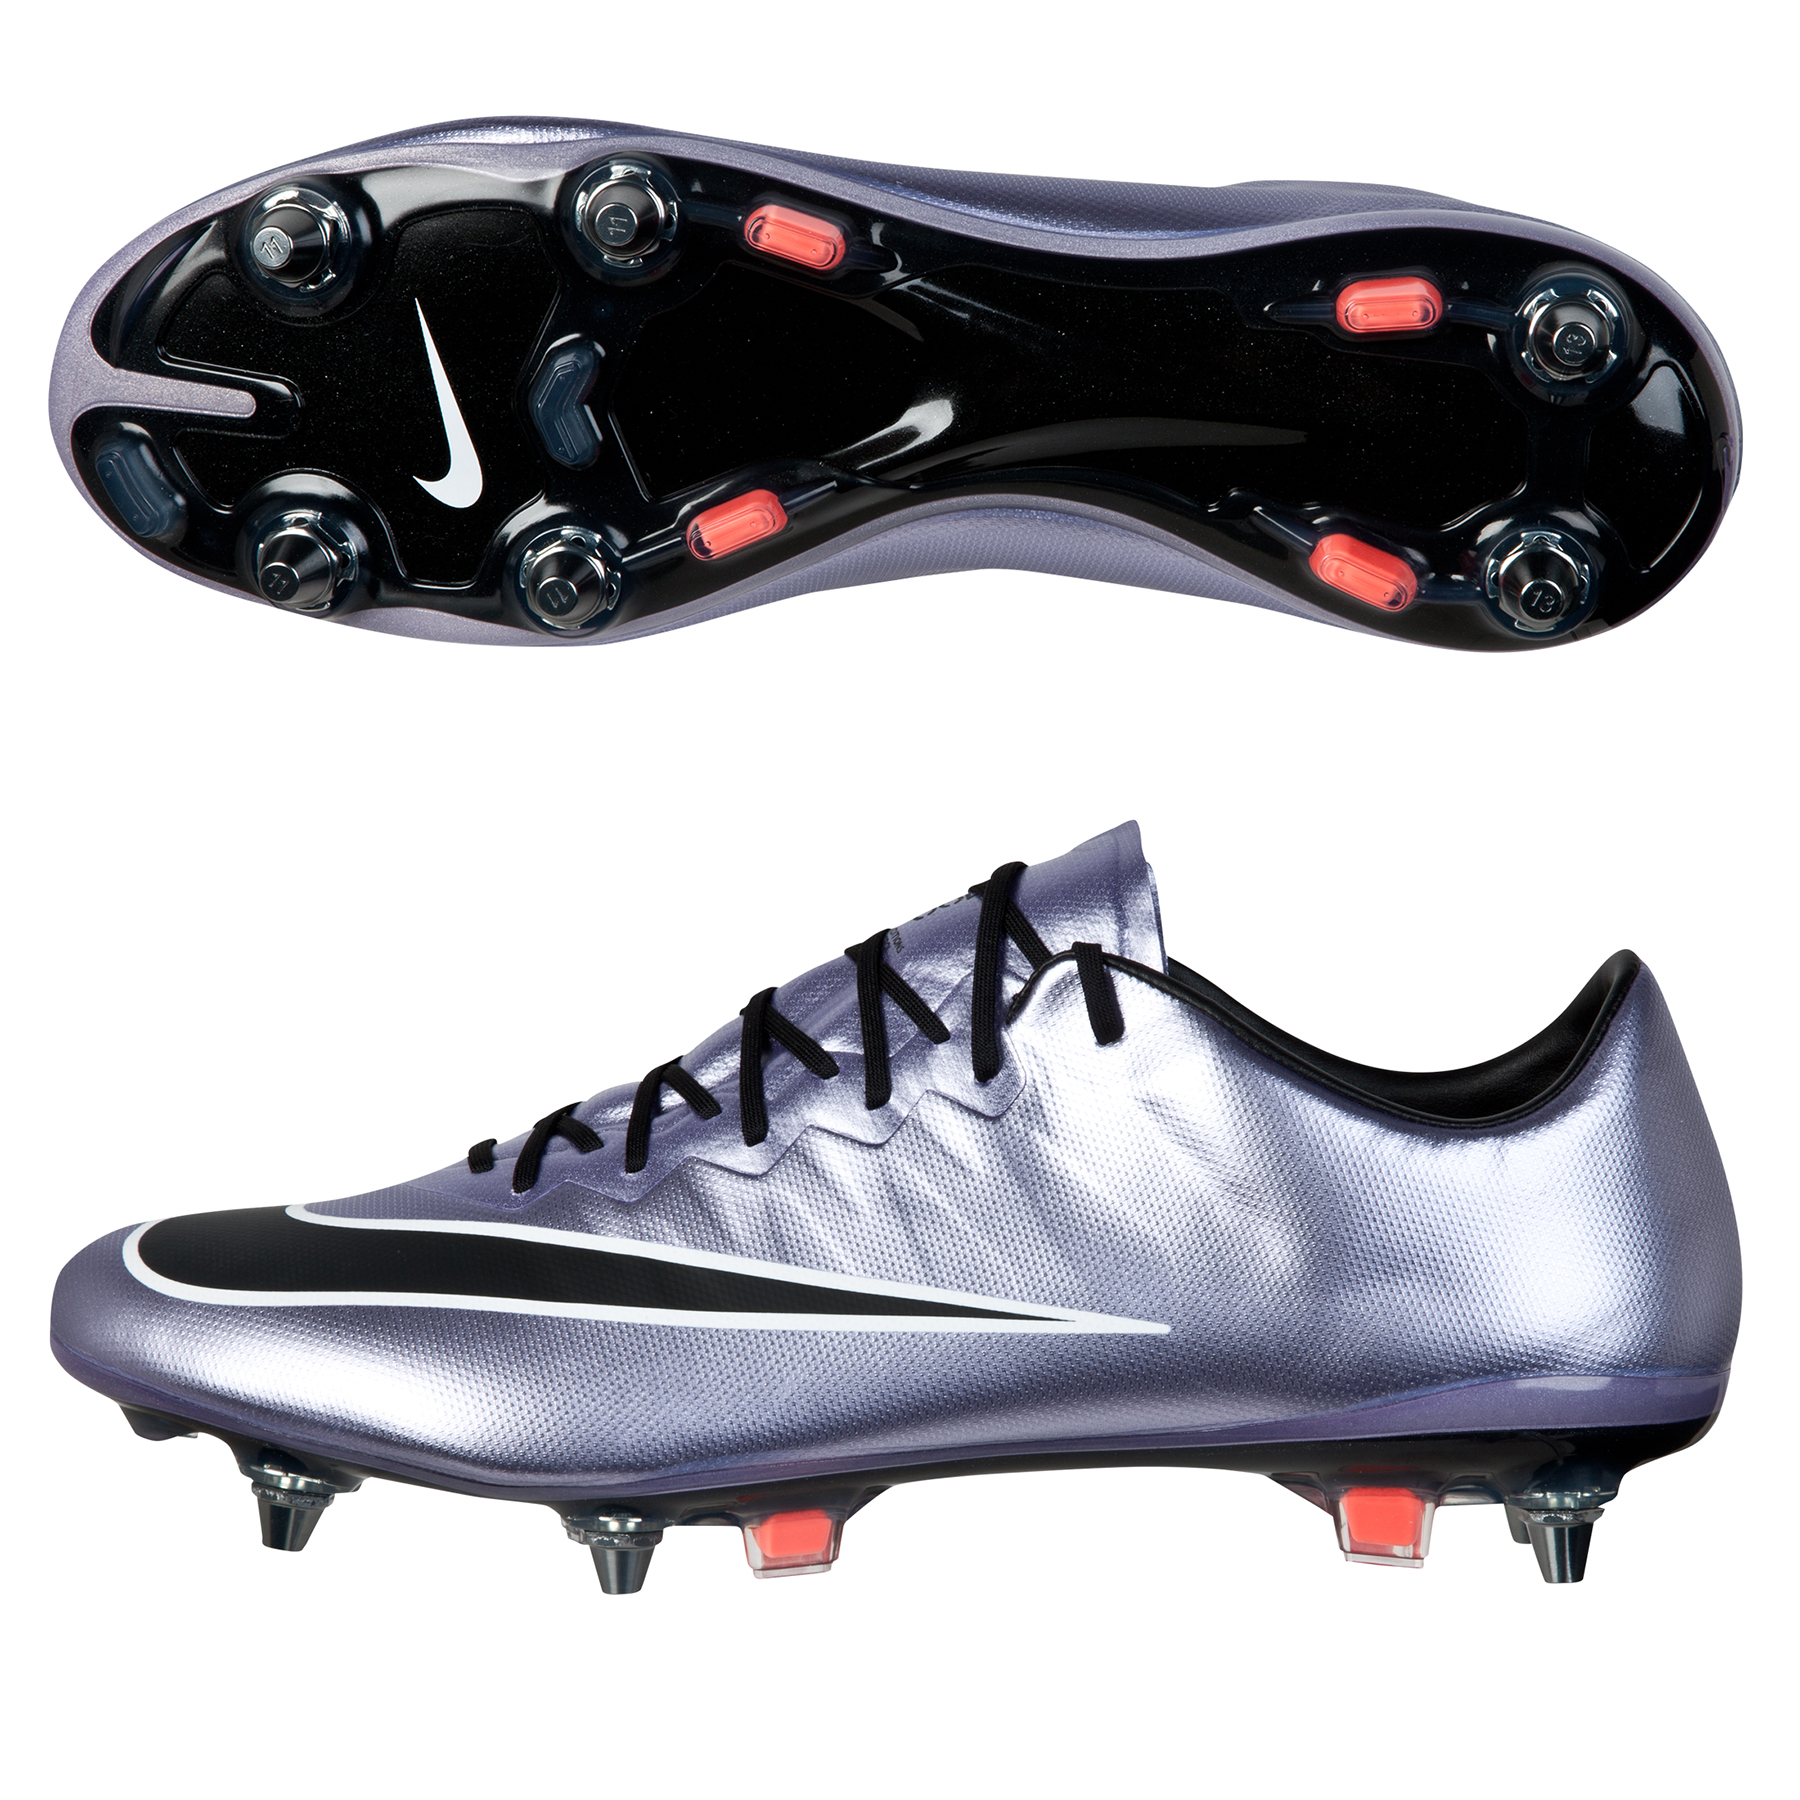 purple rugby boots find the lowest priced quality boots. Black Bedroom Furniture Sets. Home Design Ideas